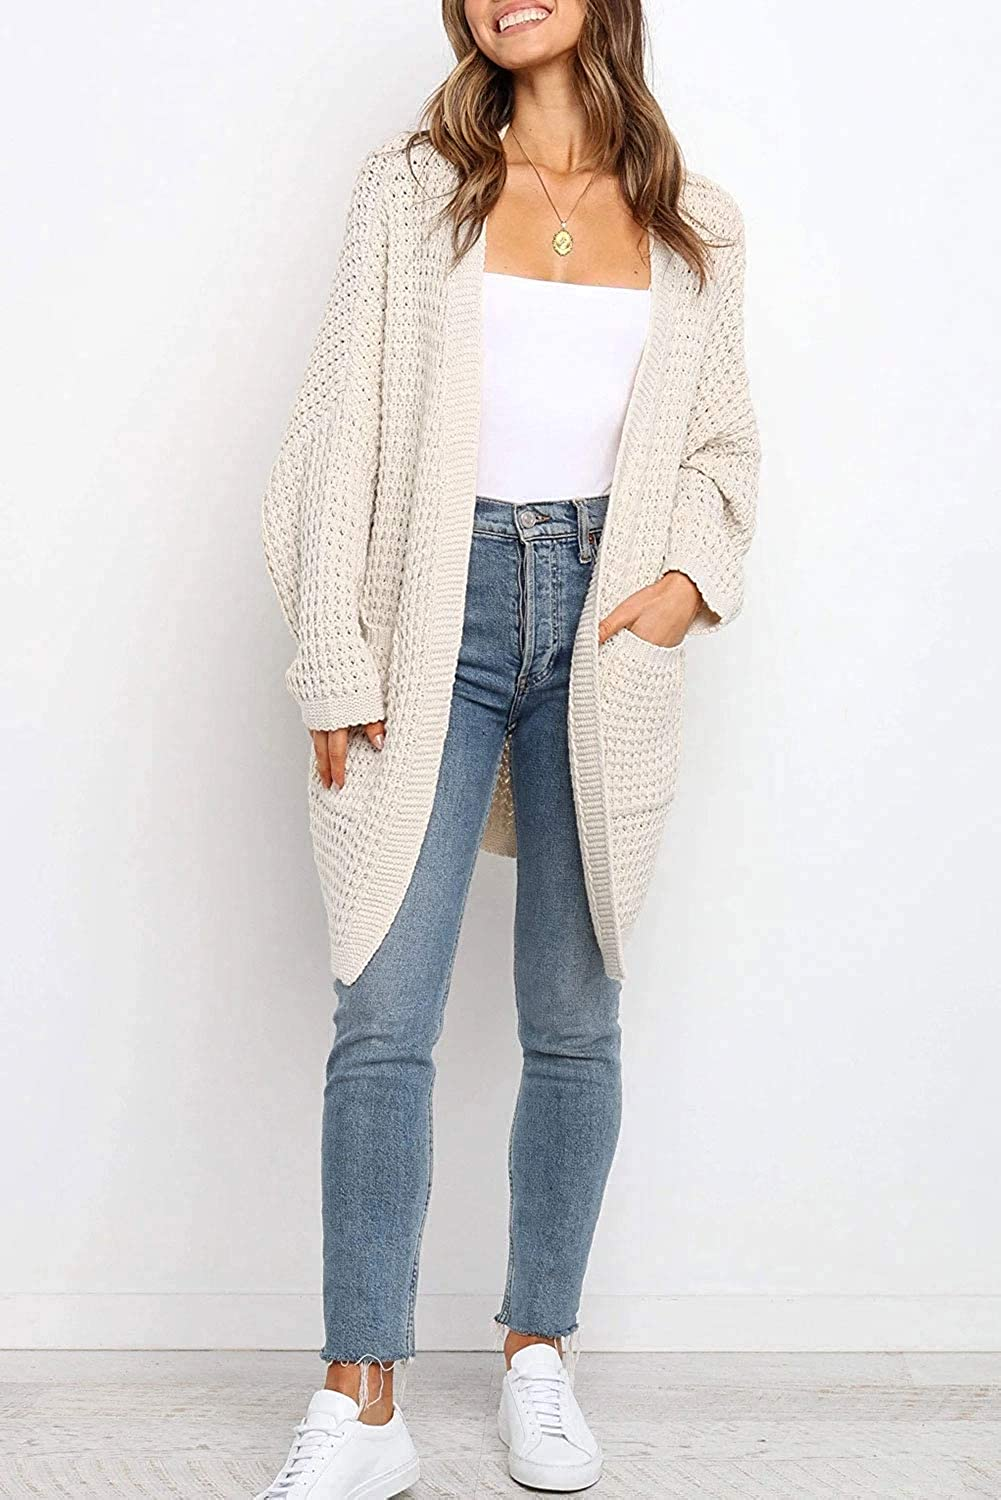 Women's Long Batwing Sleeve Open Front Chunky Cable Knit Cardigan Sweater Casual Outerwear with Pockets